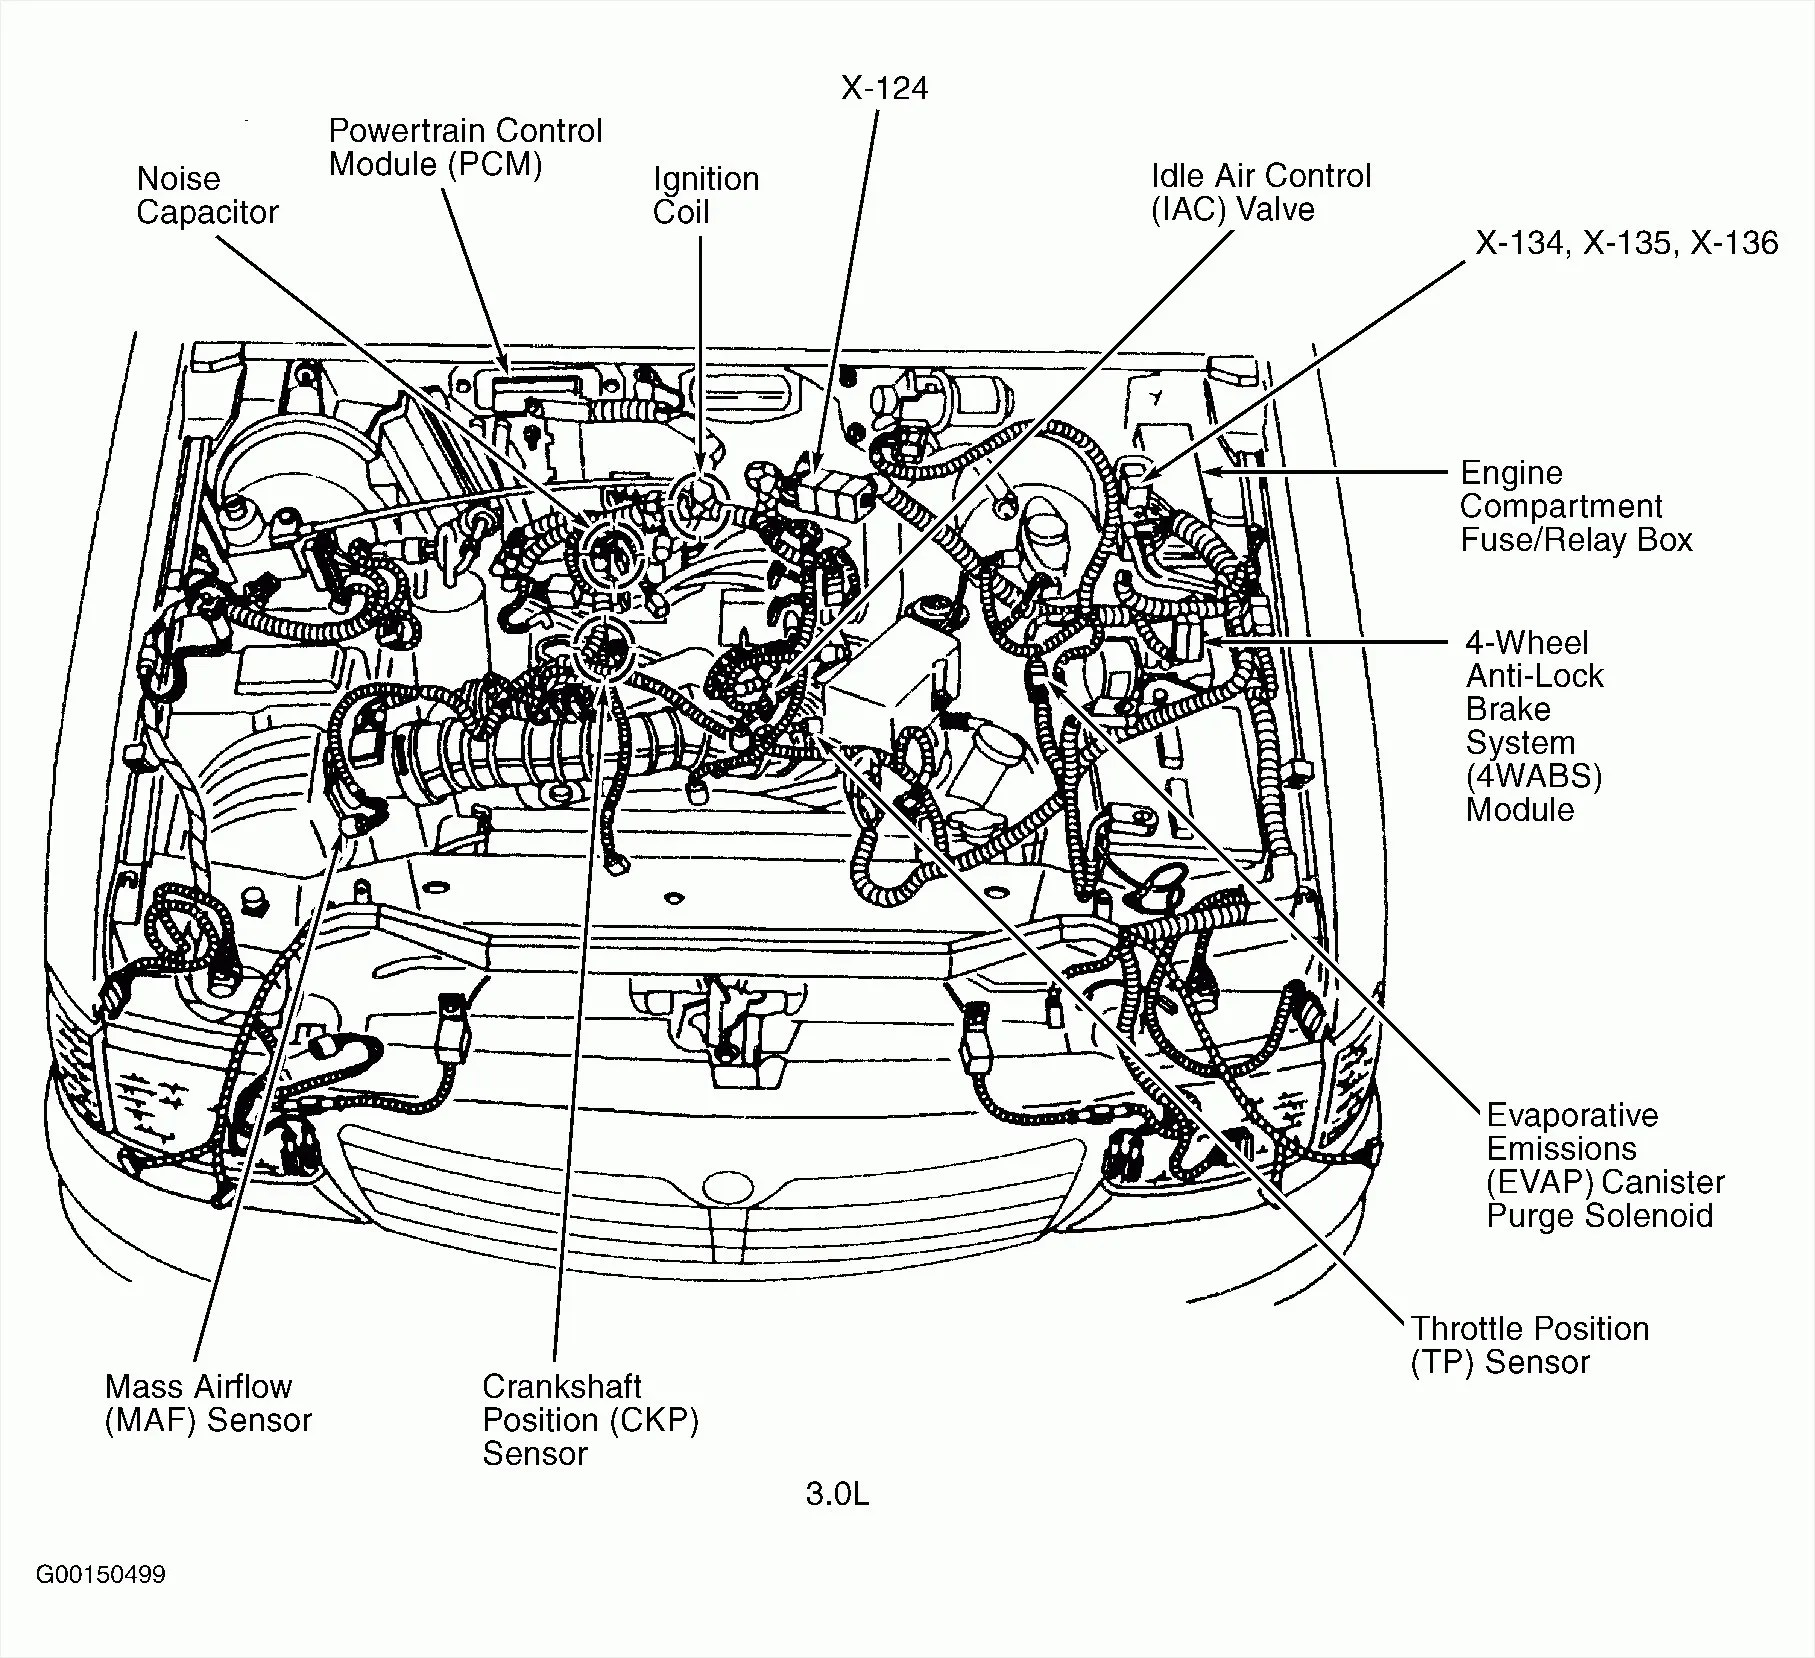 hight resolution of 1996 vr6 engine diagram wiring diagram lyc 2002 vw jetta vr6 engine diagram 2003 vw gti